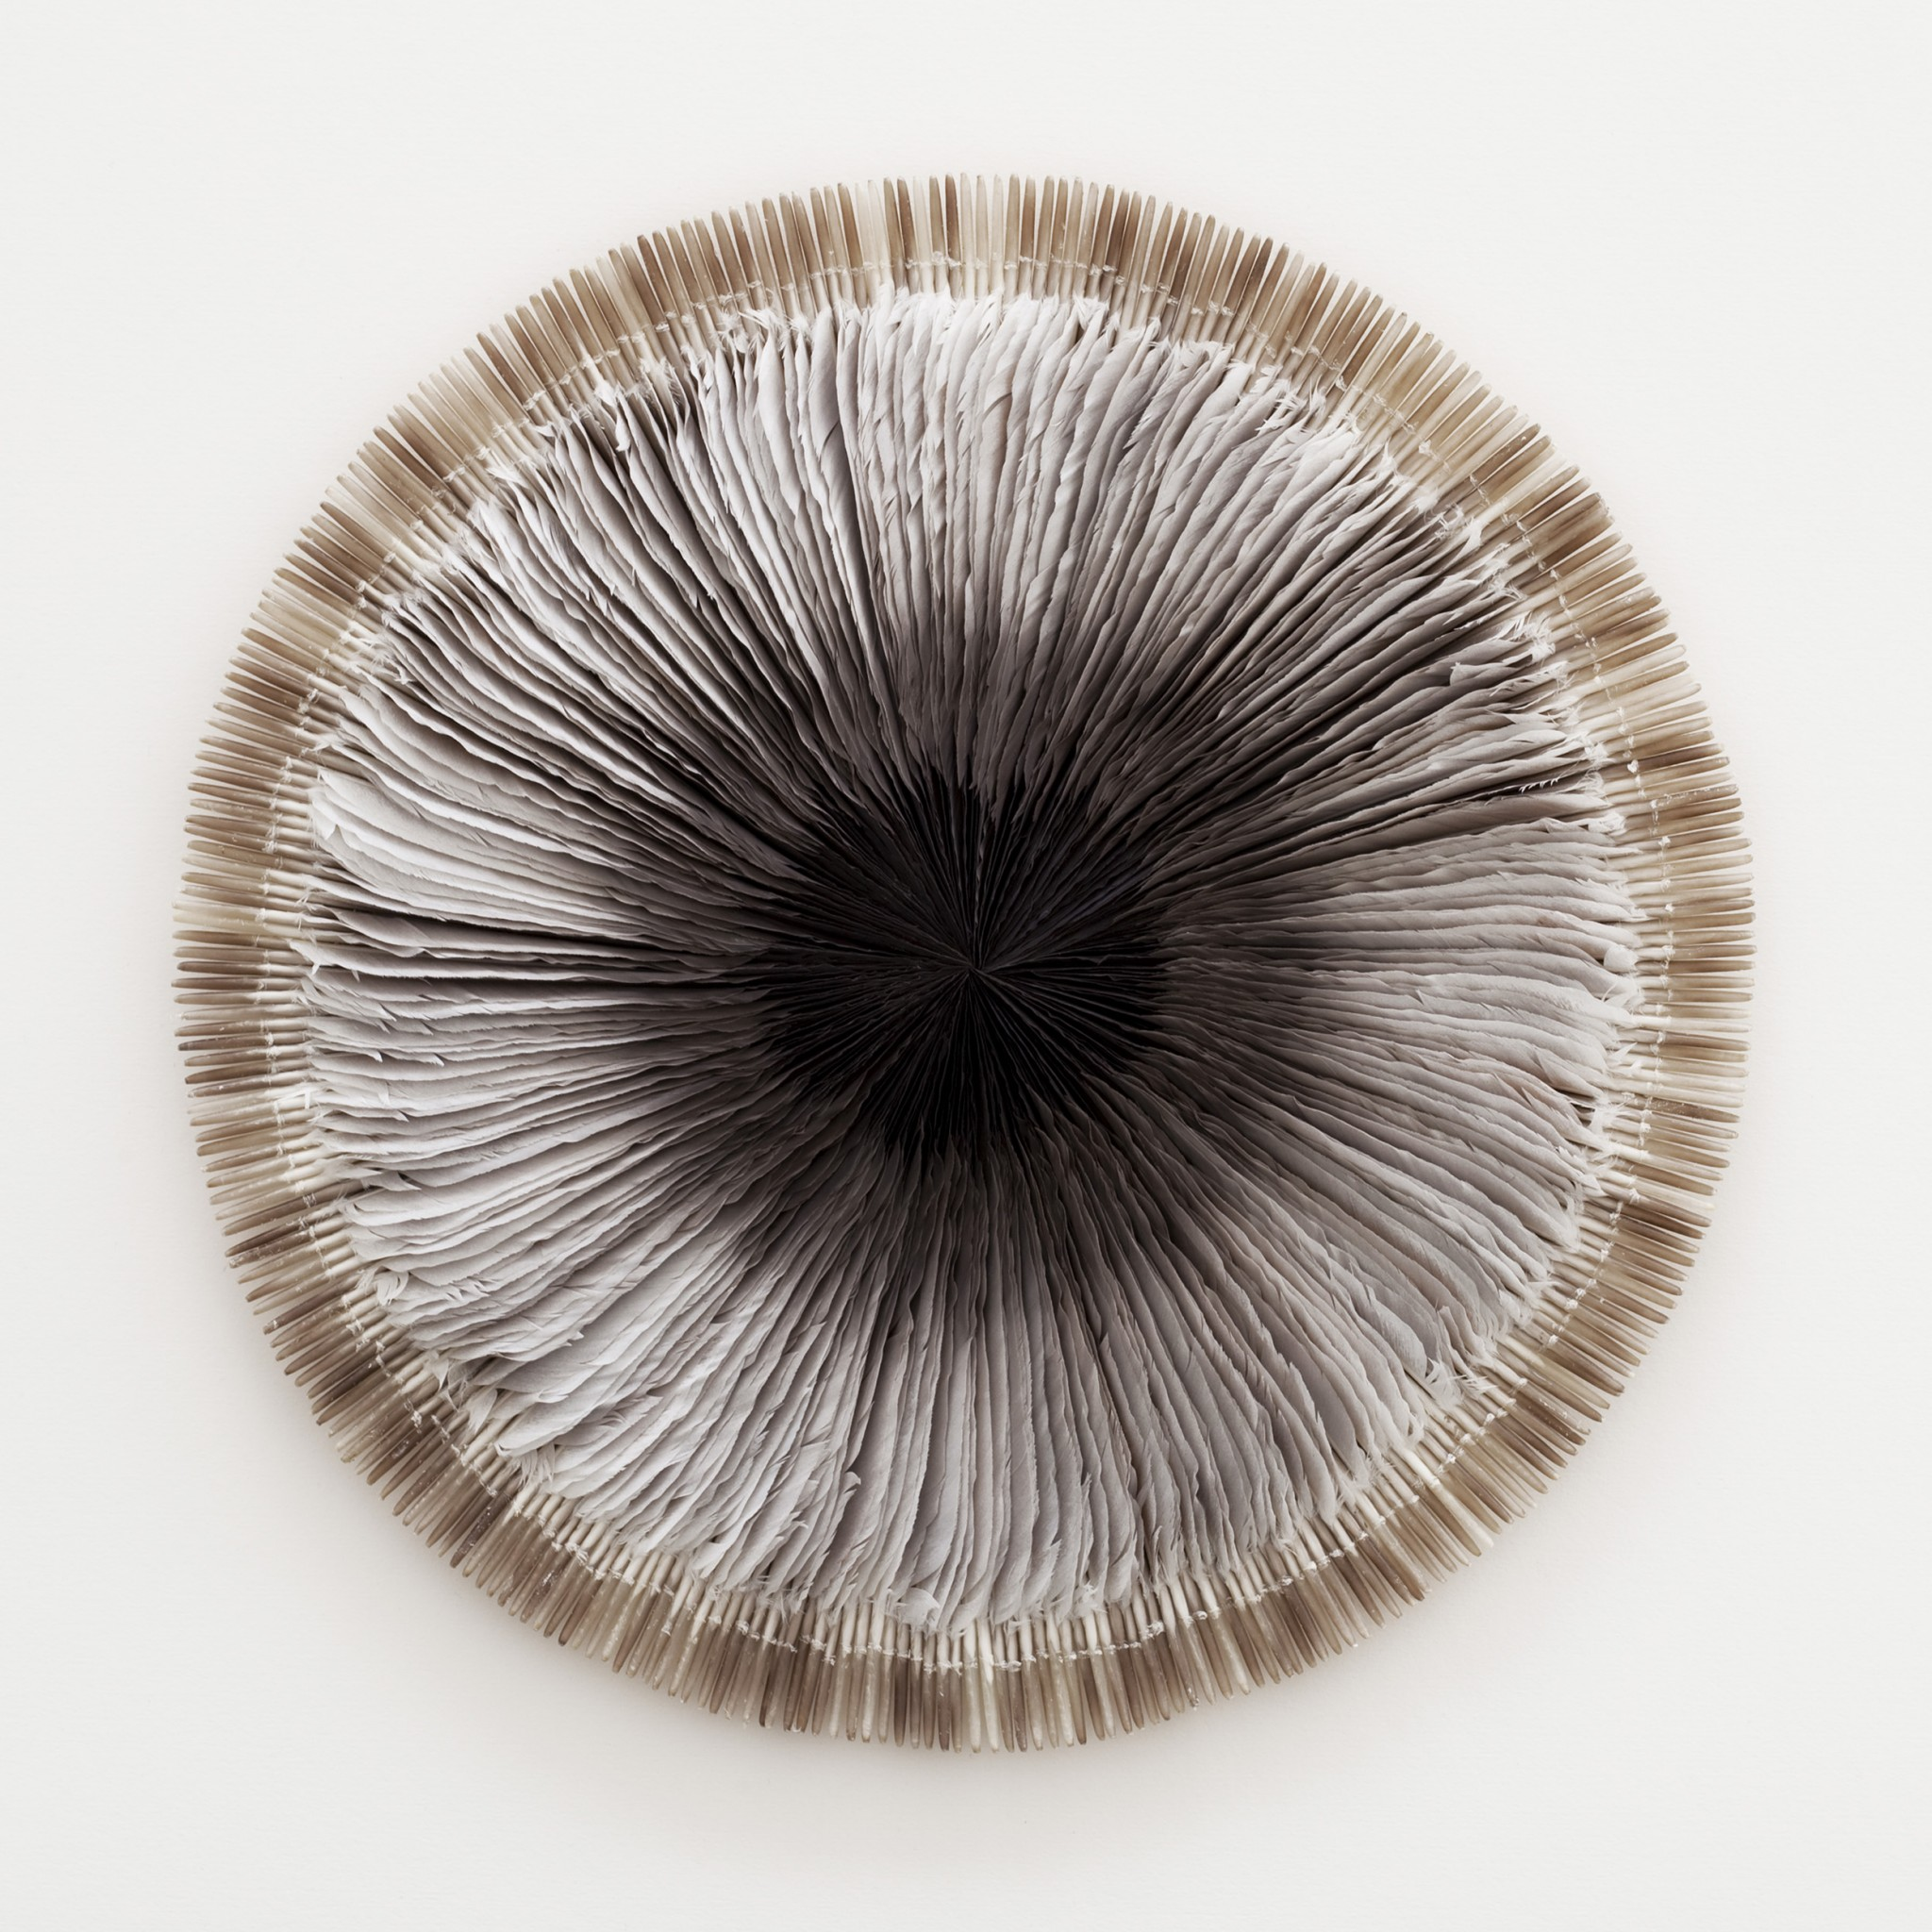 Kate MccGwire. Quiver IV